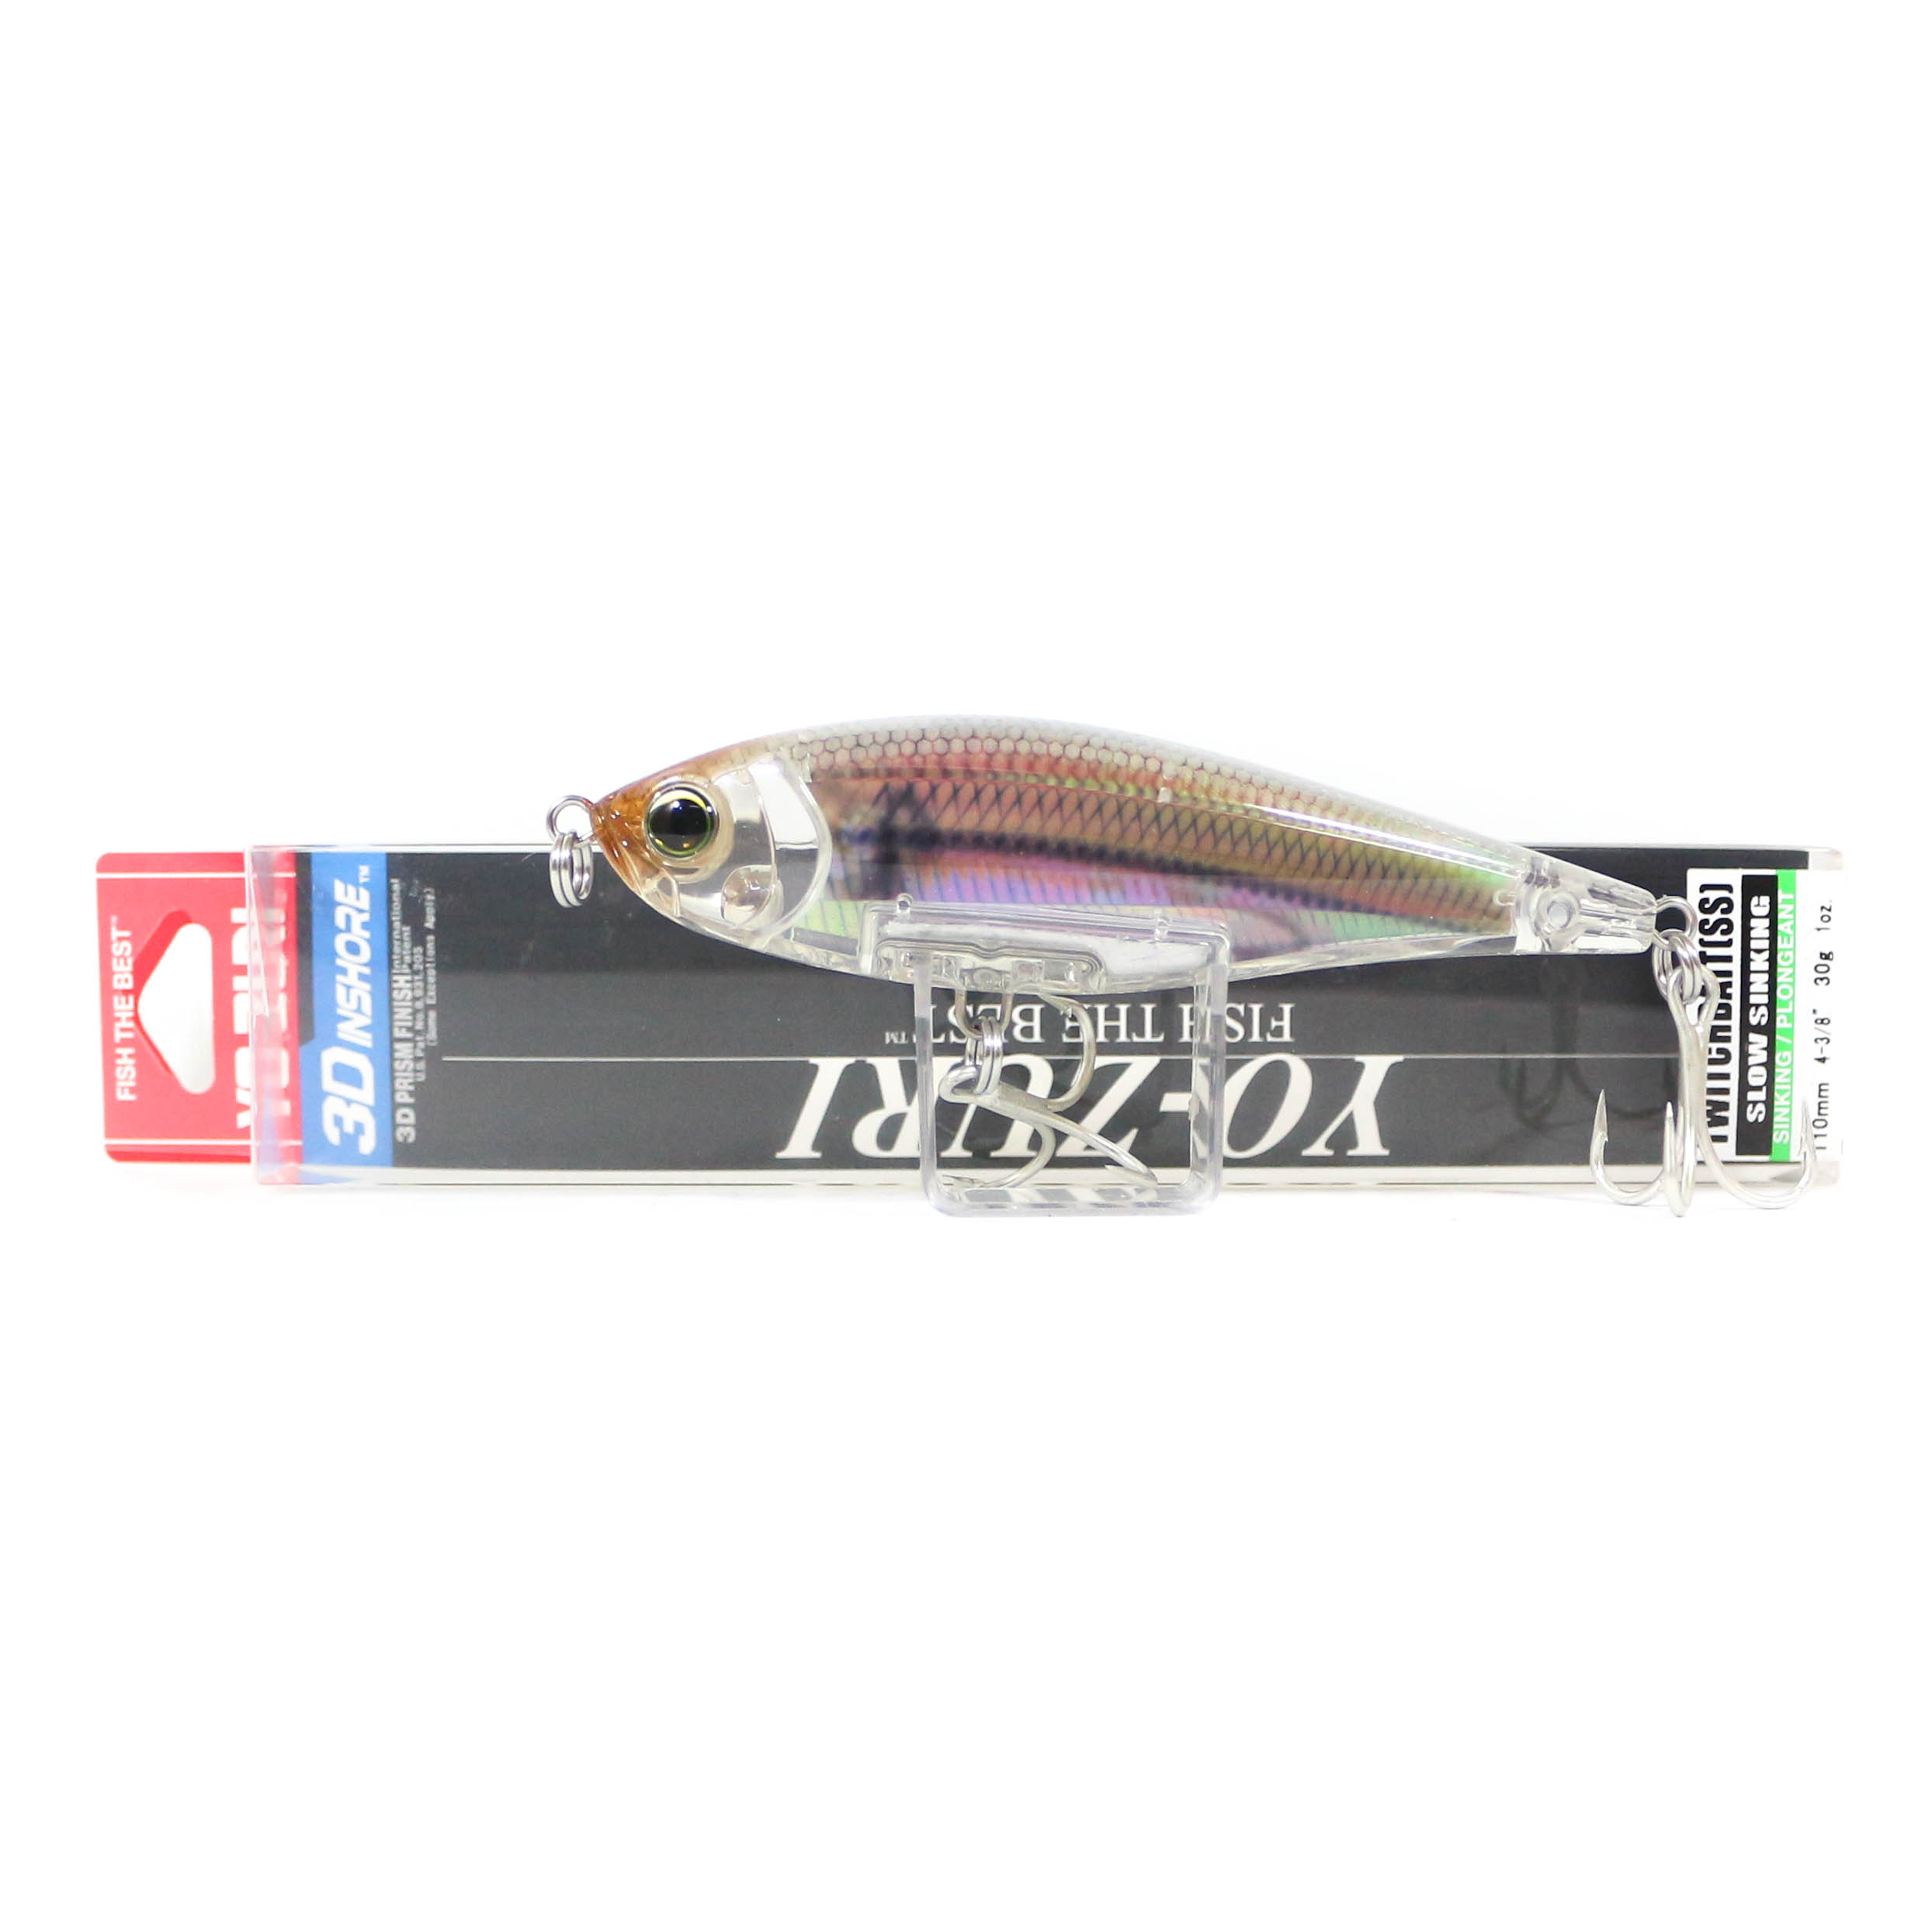 Yo Zuri Duel 3D Inshore Twitchbait 110SS Slow Sinking Lure R1348-RGLM (9403)